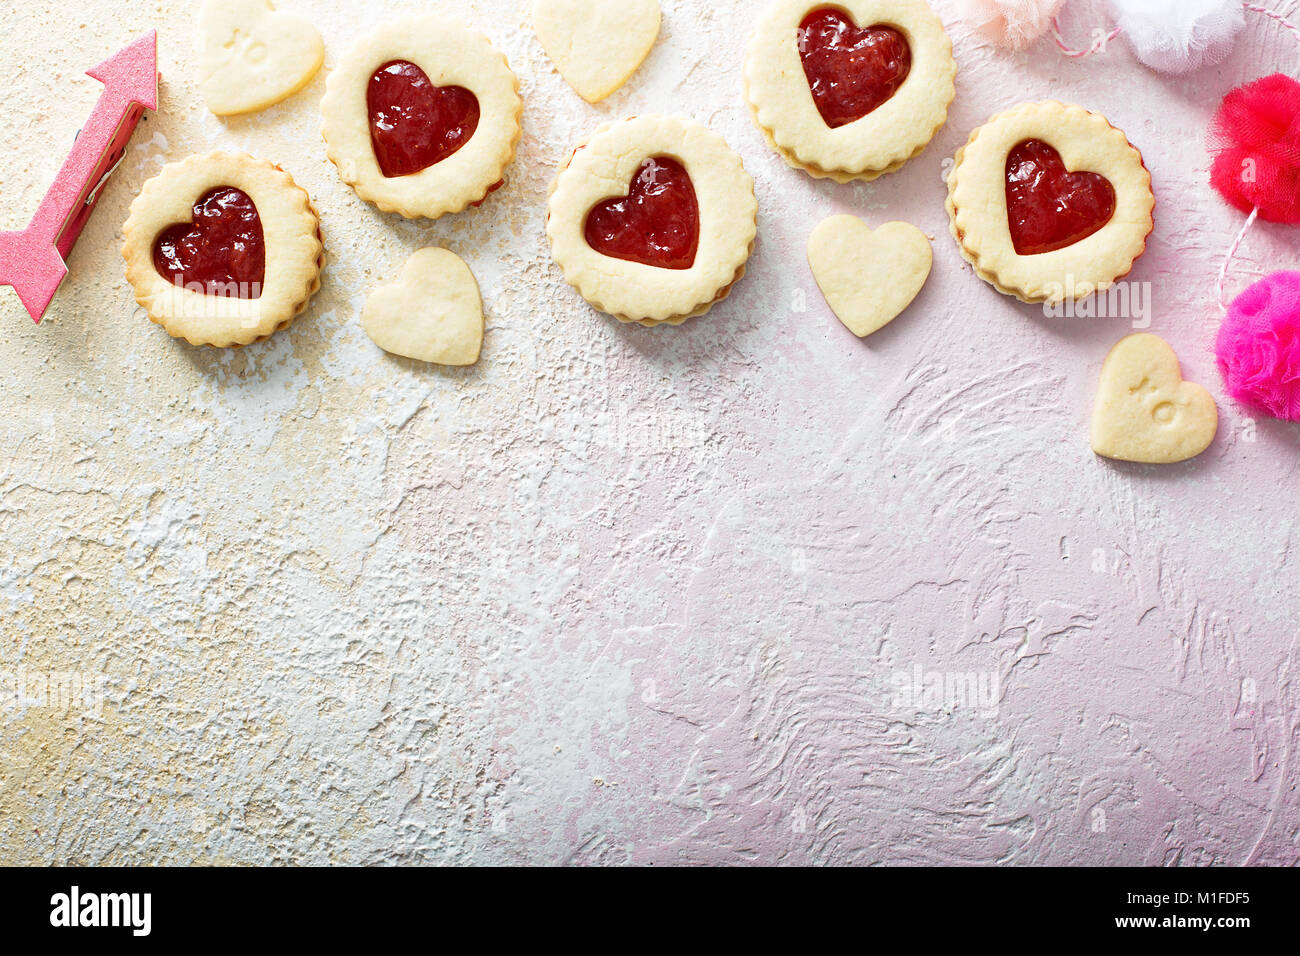 Vanilla cookies with strawberry jelly filling for Valentines Day with copy space - Stock Image